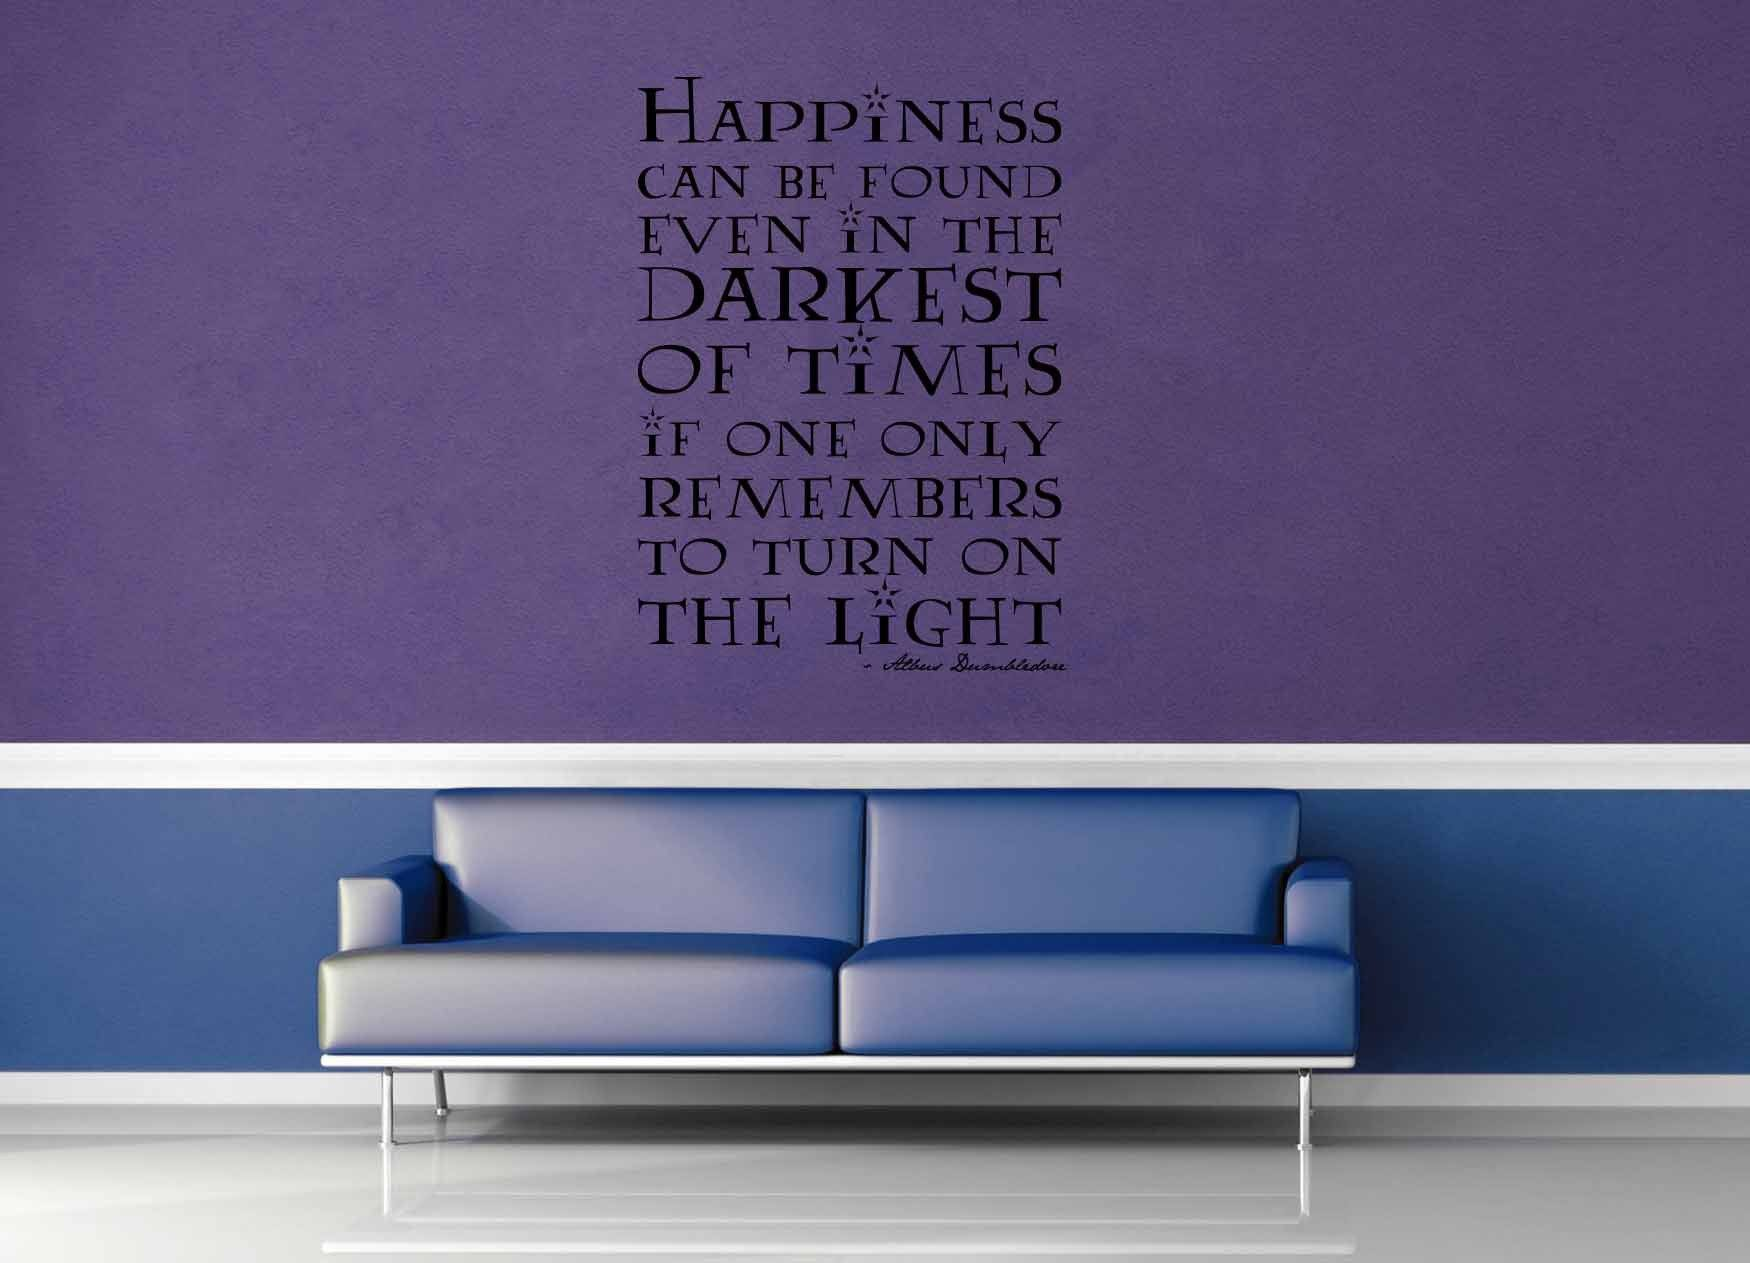 Happiness Can Be Found - Harry Potter Quote - Wall Decal - No 3 : harry potter quote wall decals - www.pureclipart.com